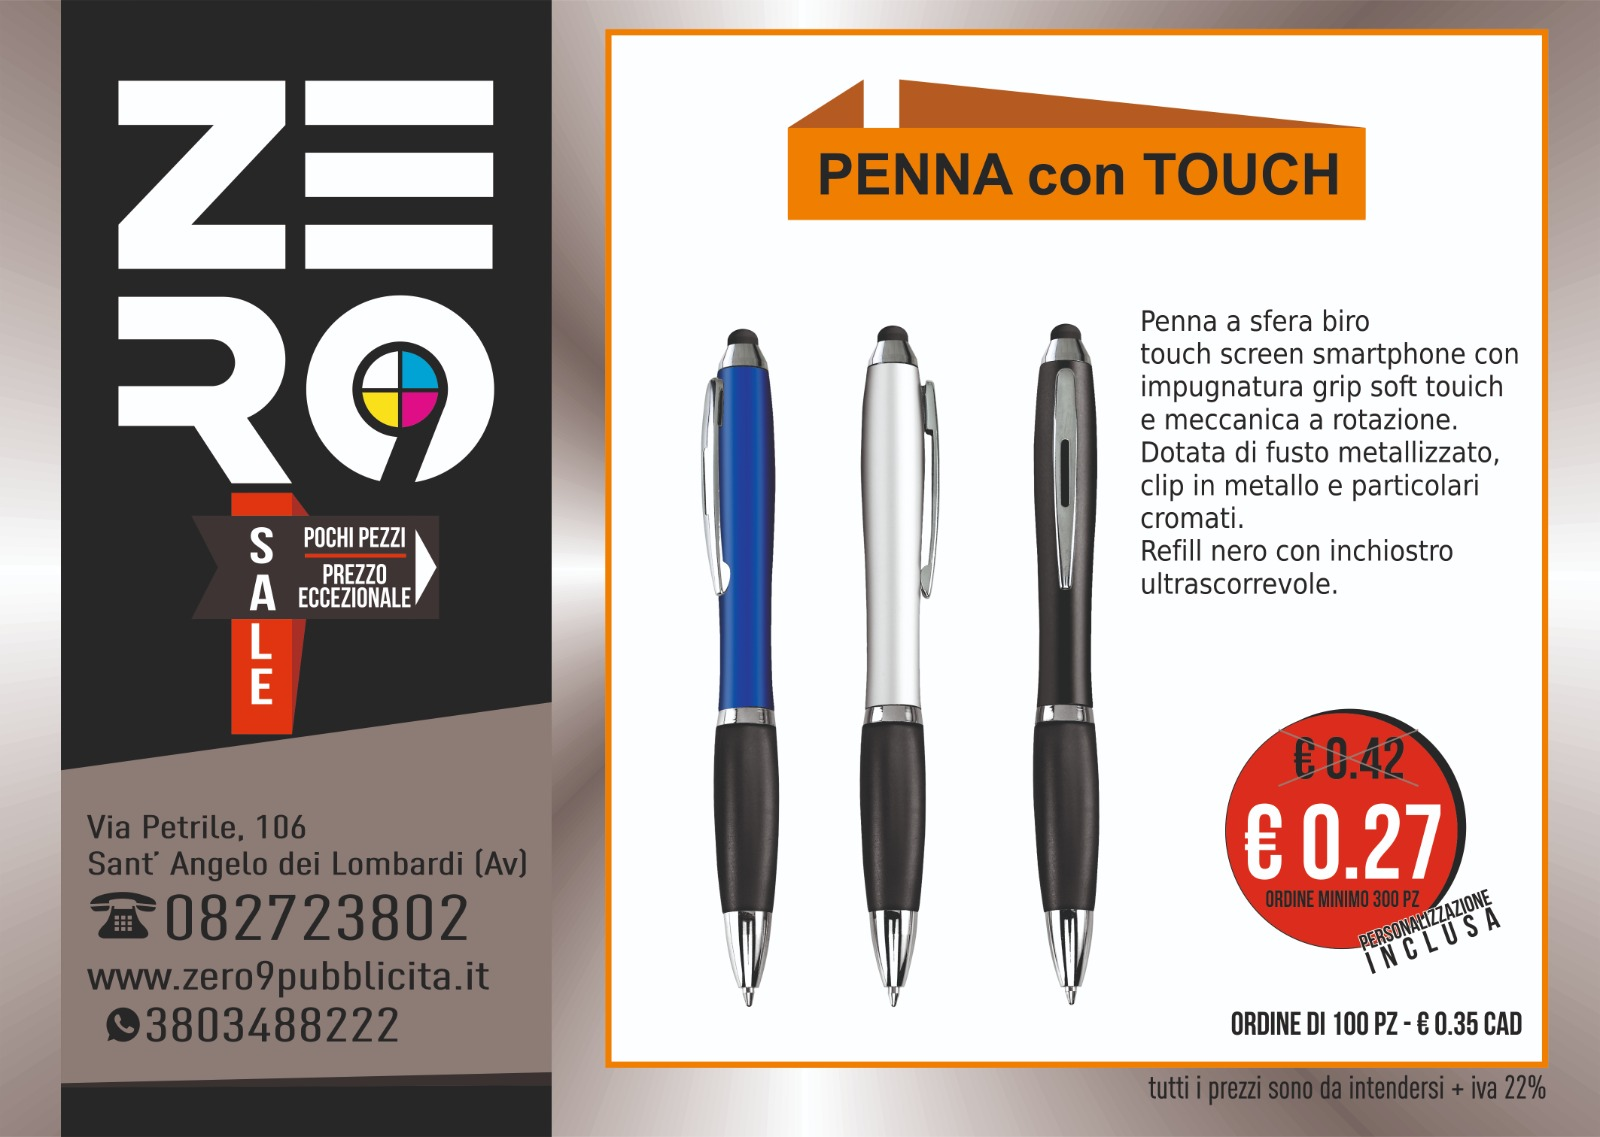 Penna con Touch